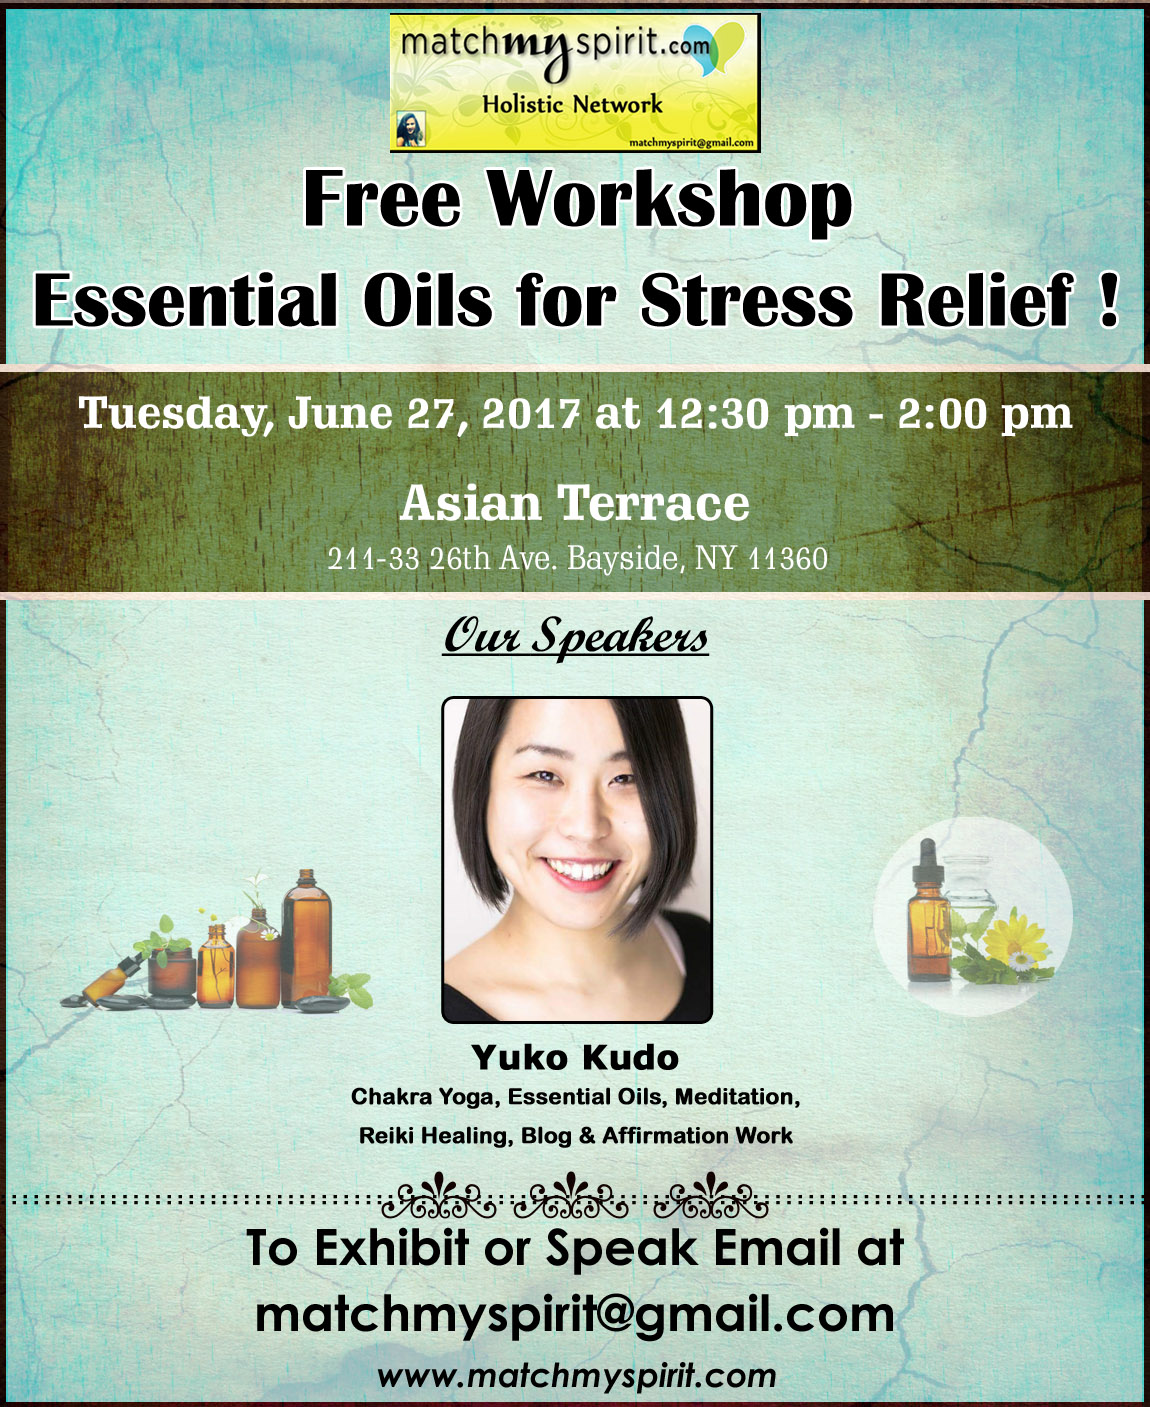 Free Workshop - Essential Oils for Stress Relief !